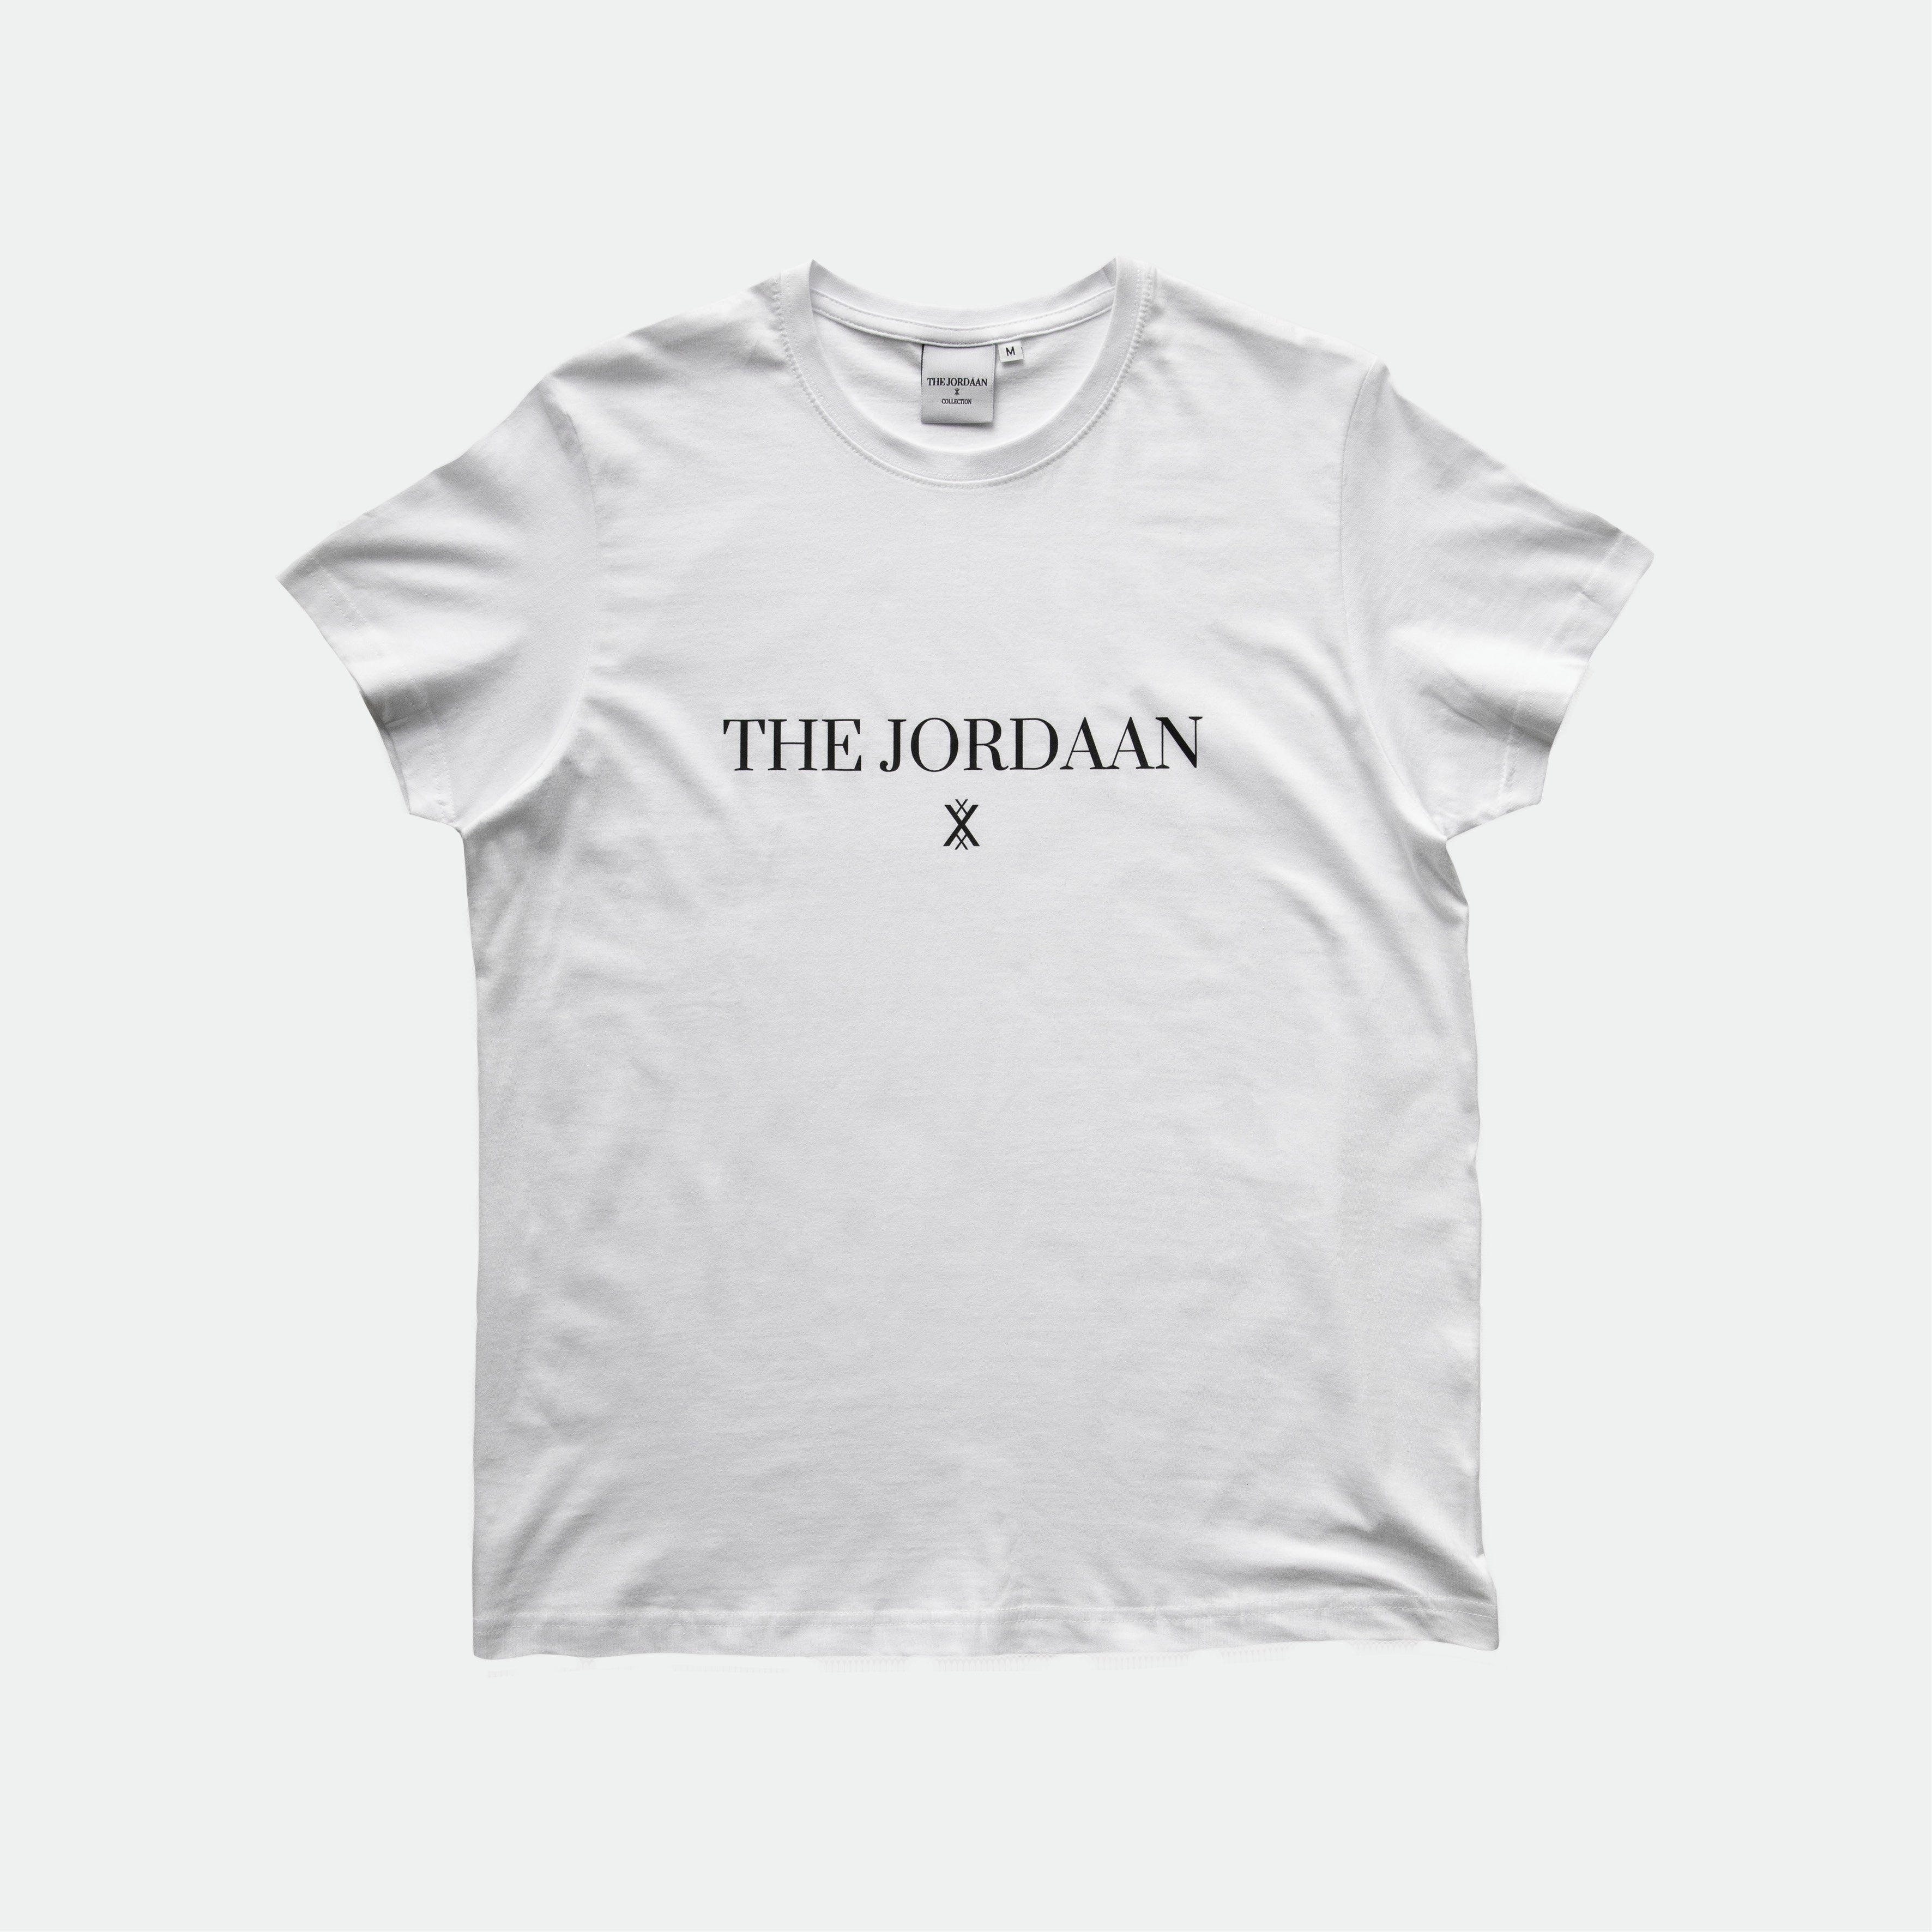 The all time classic white T-Shirt with a modern unisex fit. Made from high quality cotton with the original THE JORDAAN logo, wear it casual with your favorite denim or as a real statement piece with one of your favorite fashion items!